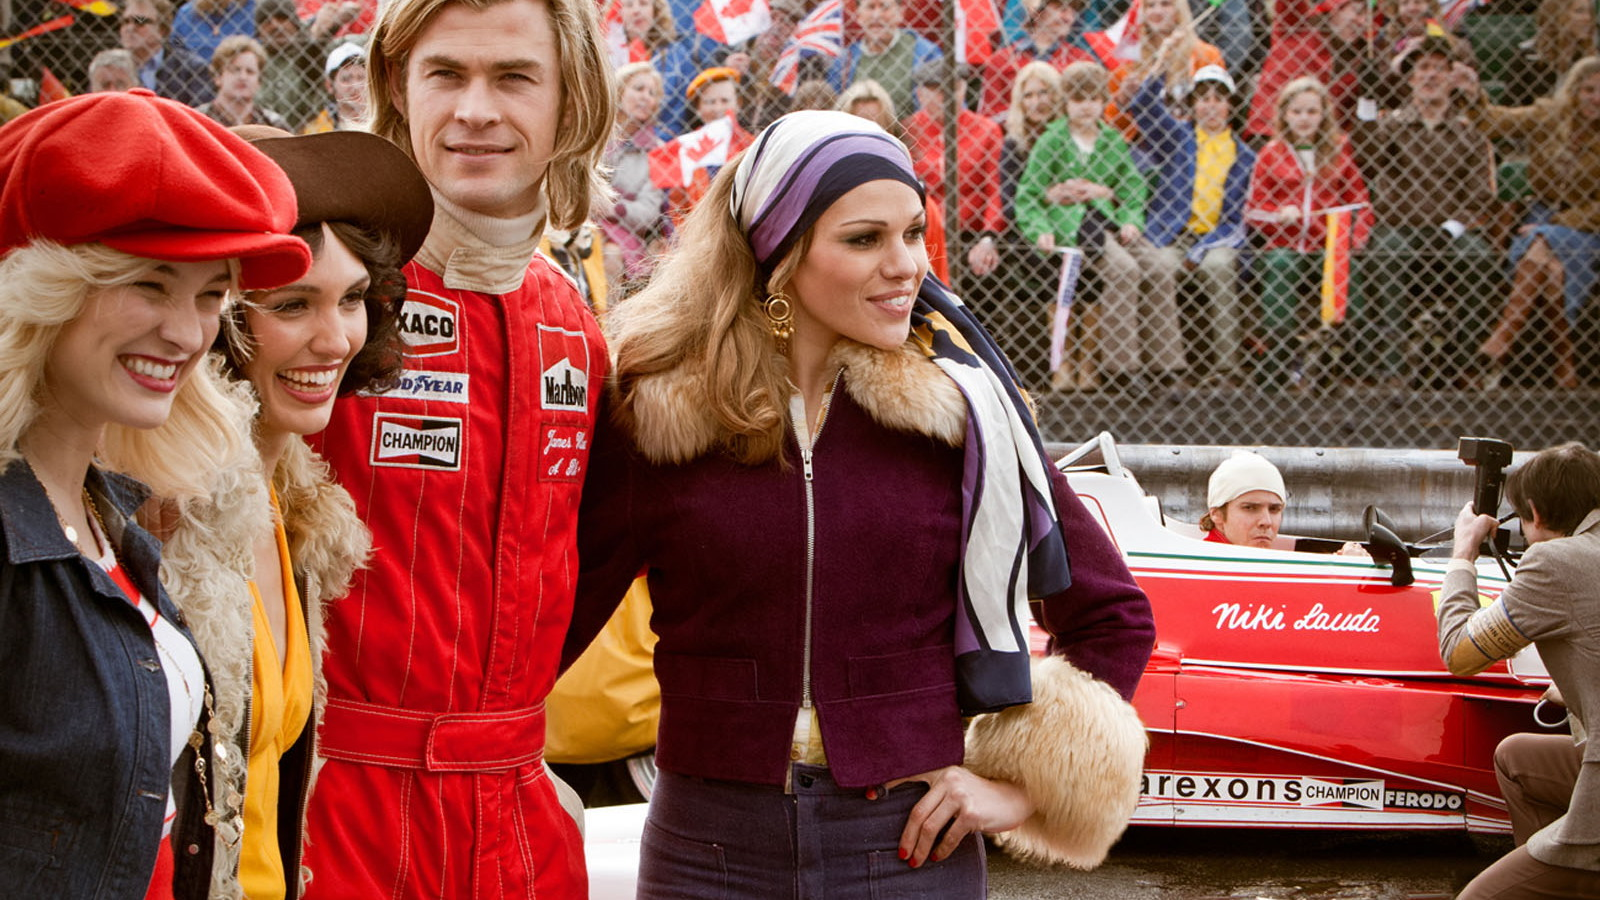 Official images from Niki Lauda Biopic 'Rush'